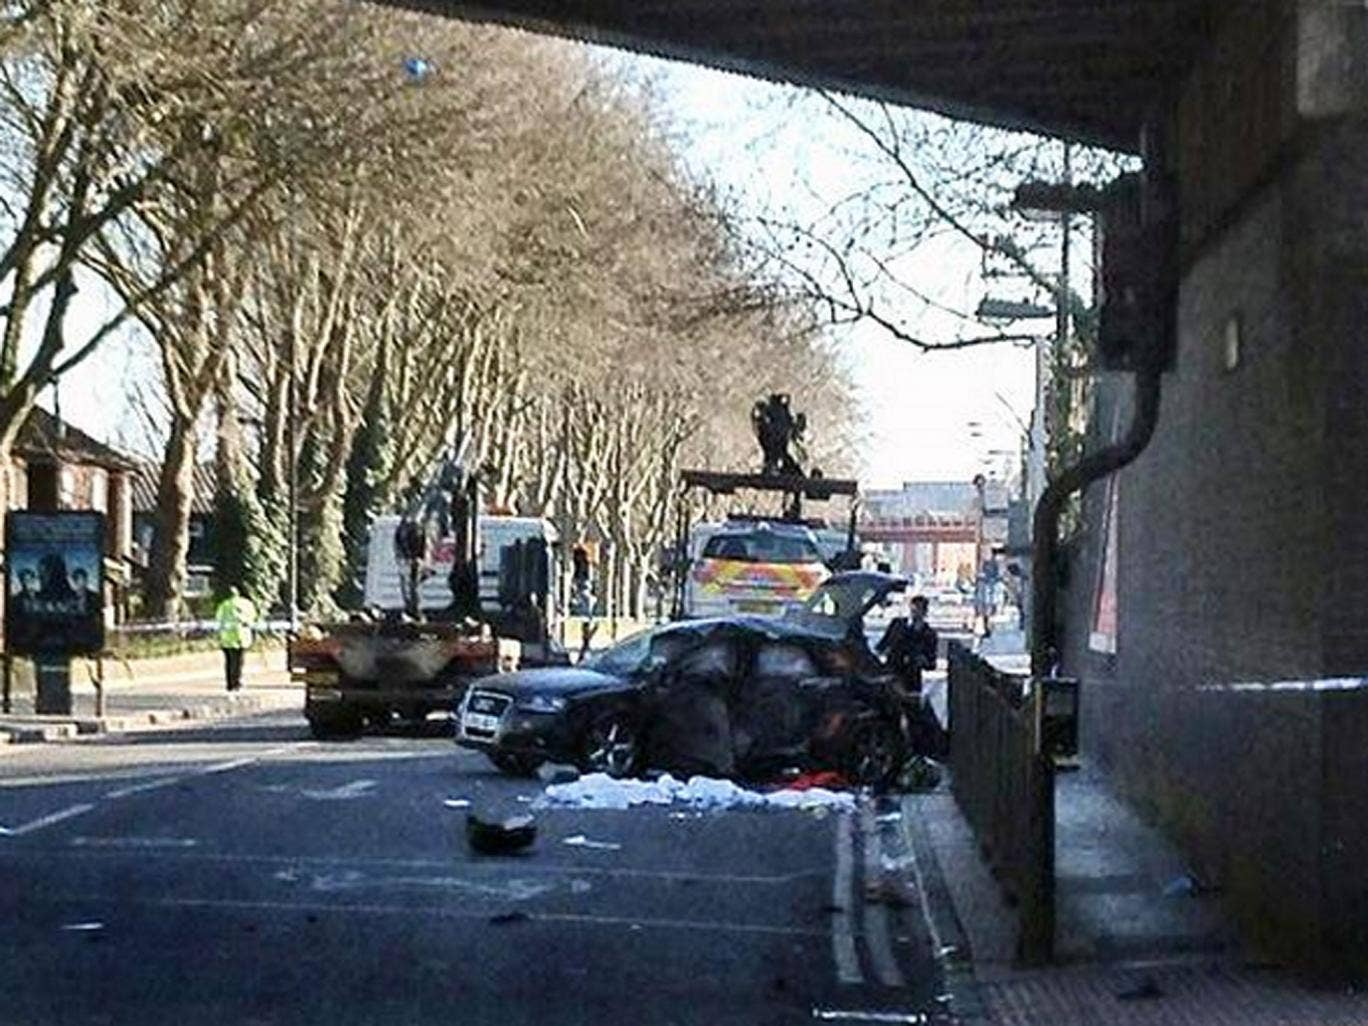 Two men have died in this crash after a police chase in north London